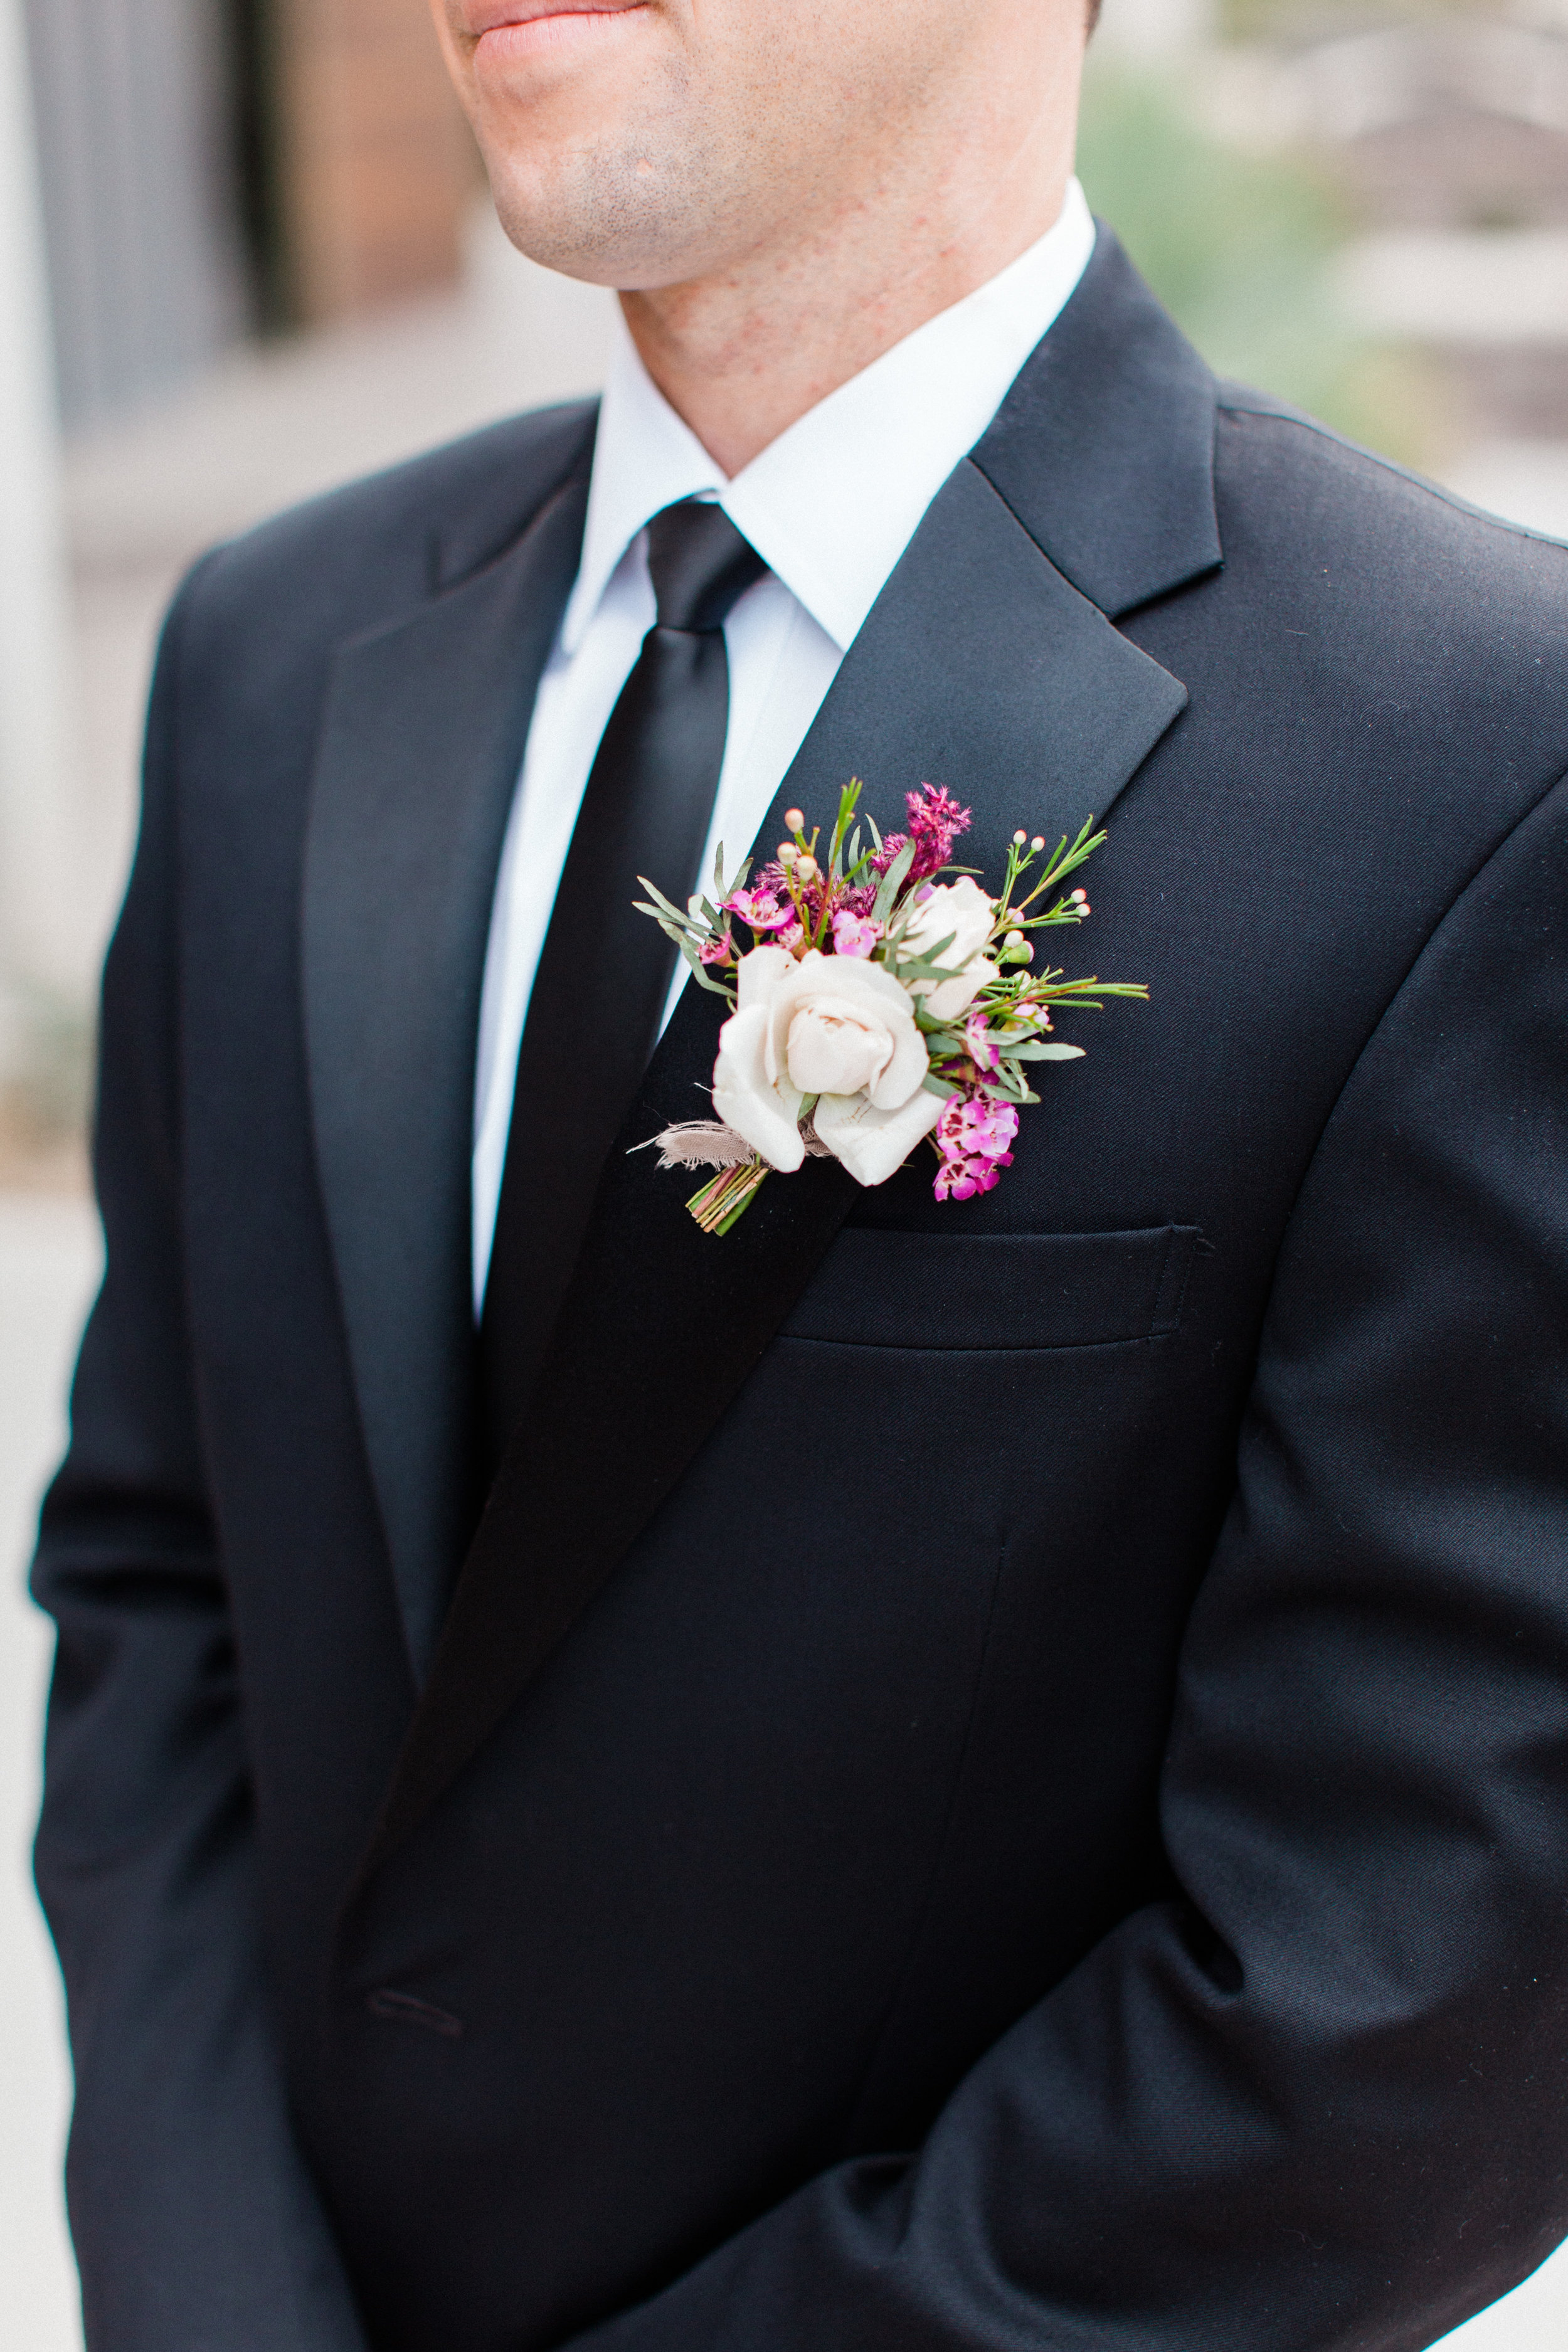 Mauve and Lavender Modern Wedding Inspiration - Groom Boutonniere